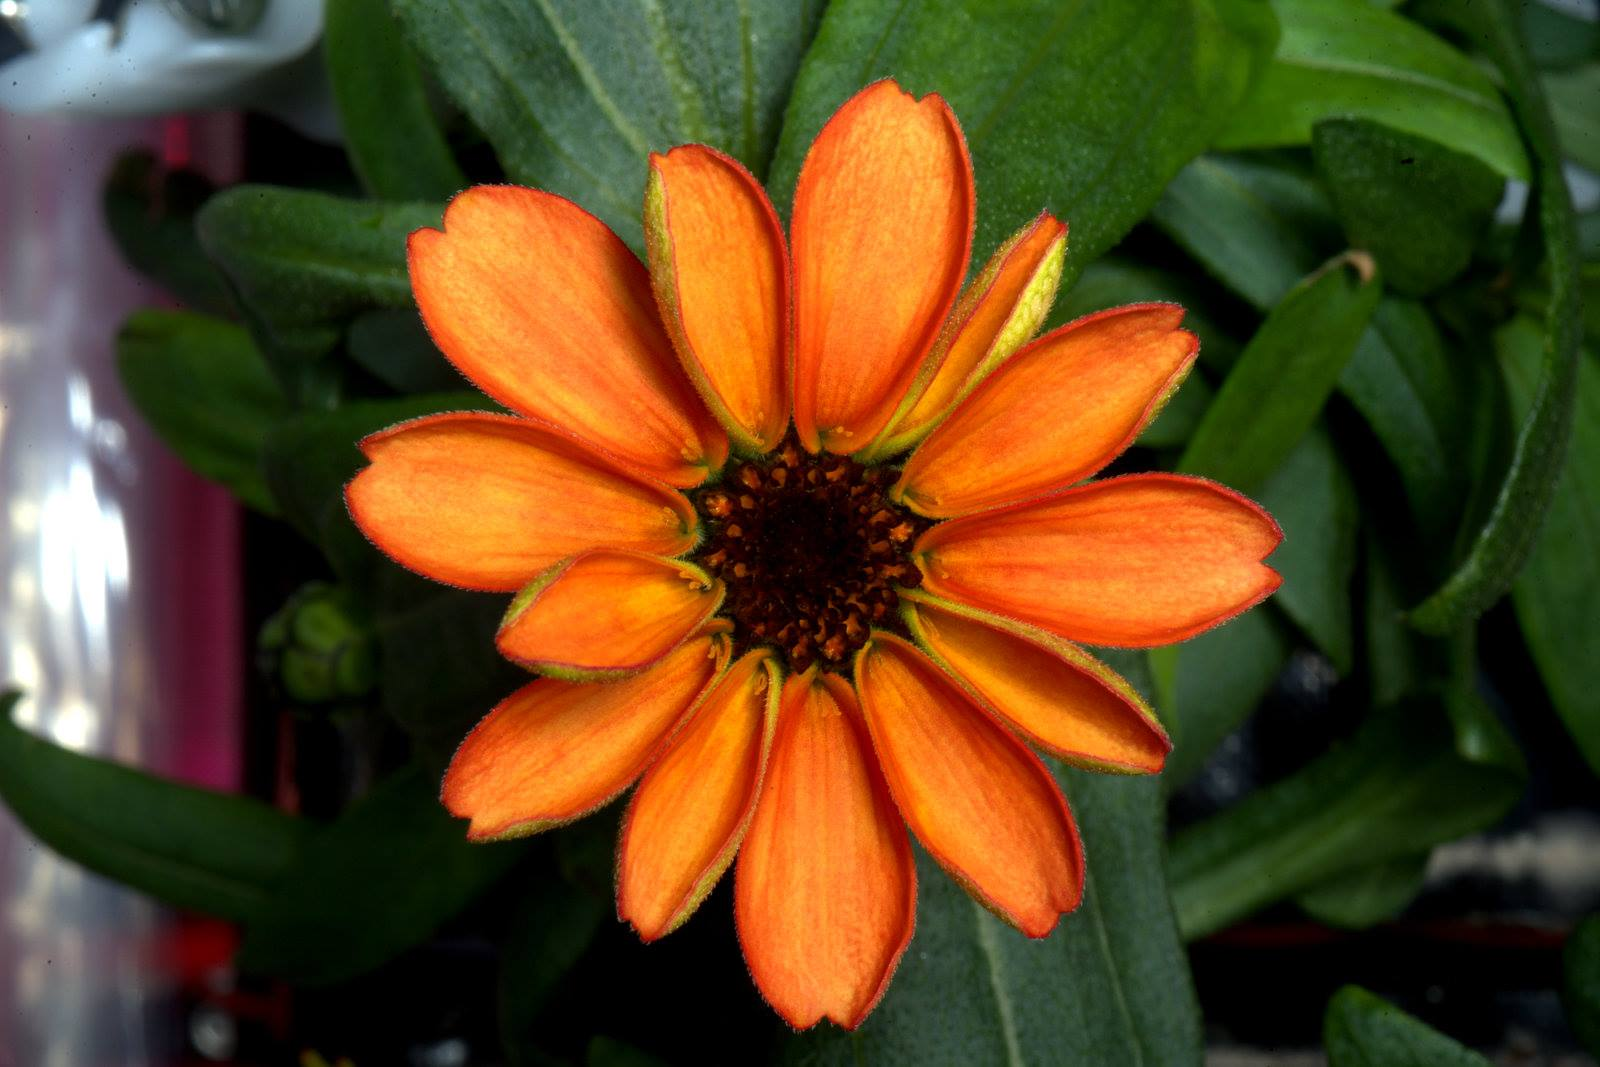 Scott Kelly shared this photo of an orange zinnia flower growing aboard the ISS.